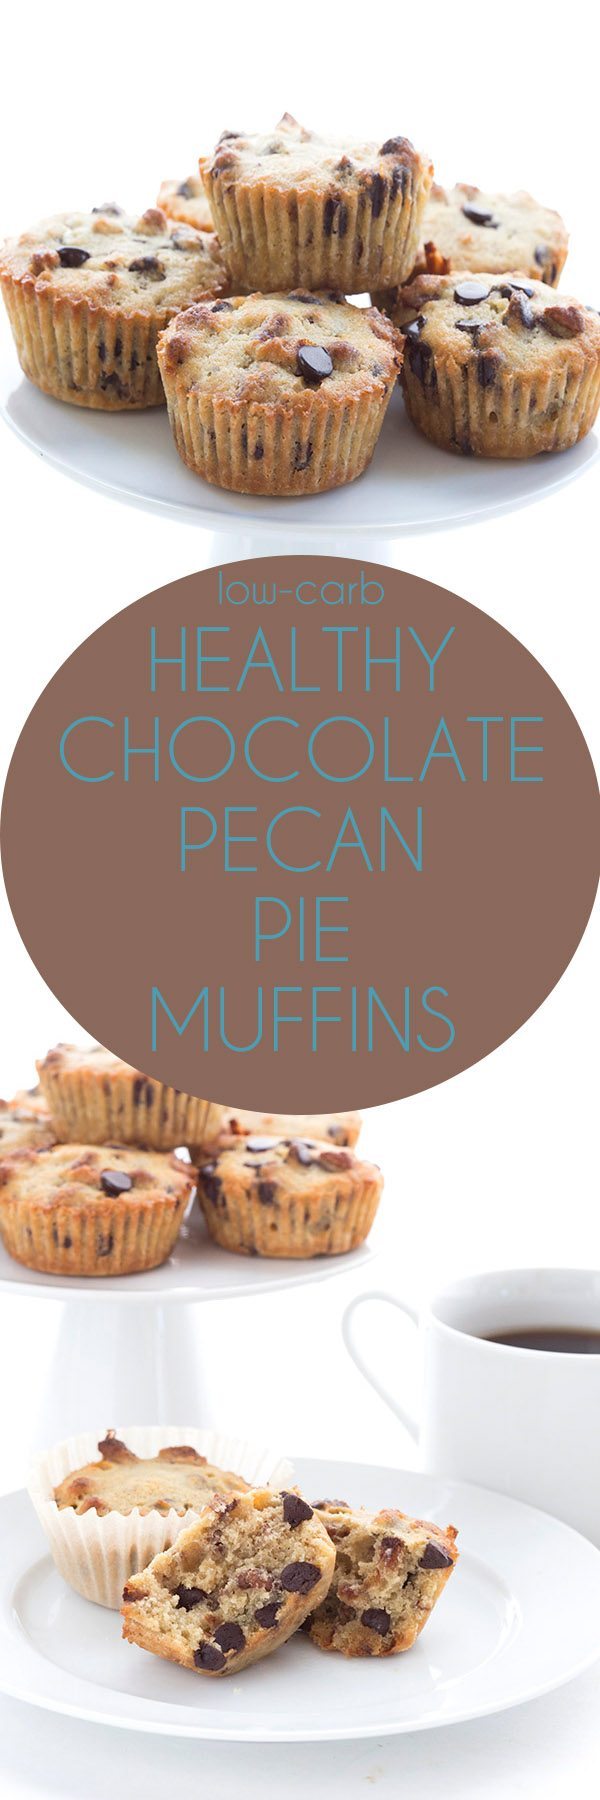 Low Carb Chocolate Pecan Pie Muffin Recipe. Keto THM LCHF Banting